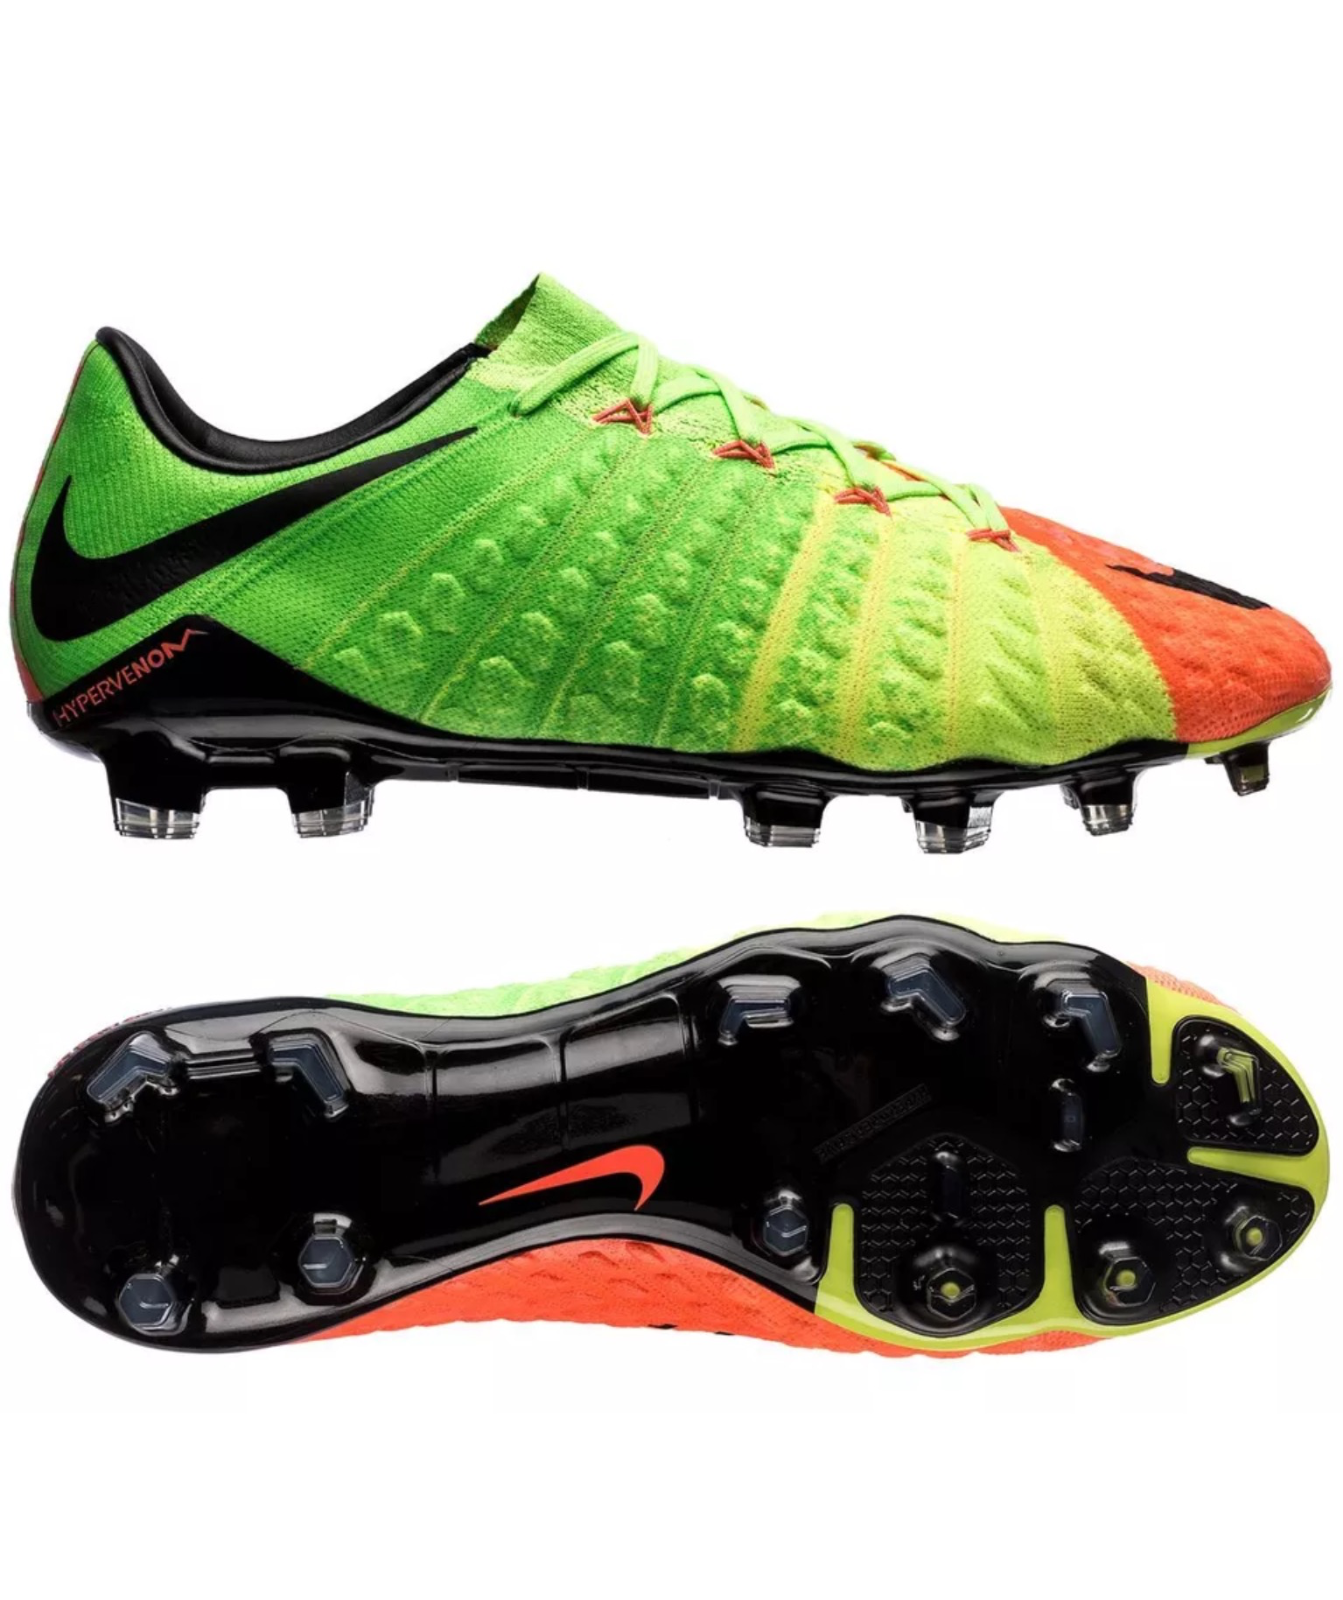 acea0d93e0a NIKE HYPERVENOM PHANTOM III FG ELECTRIC GREEN   BLACK SOCCER CLEATS (852567 -308)